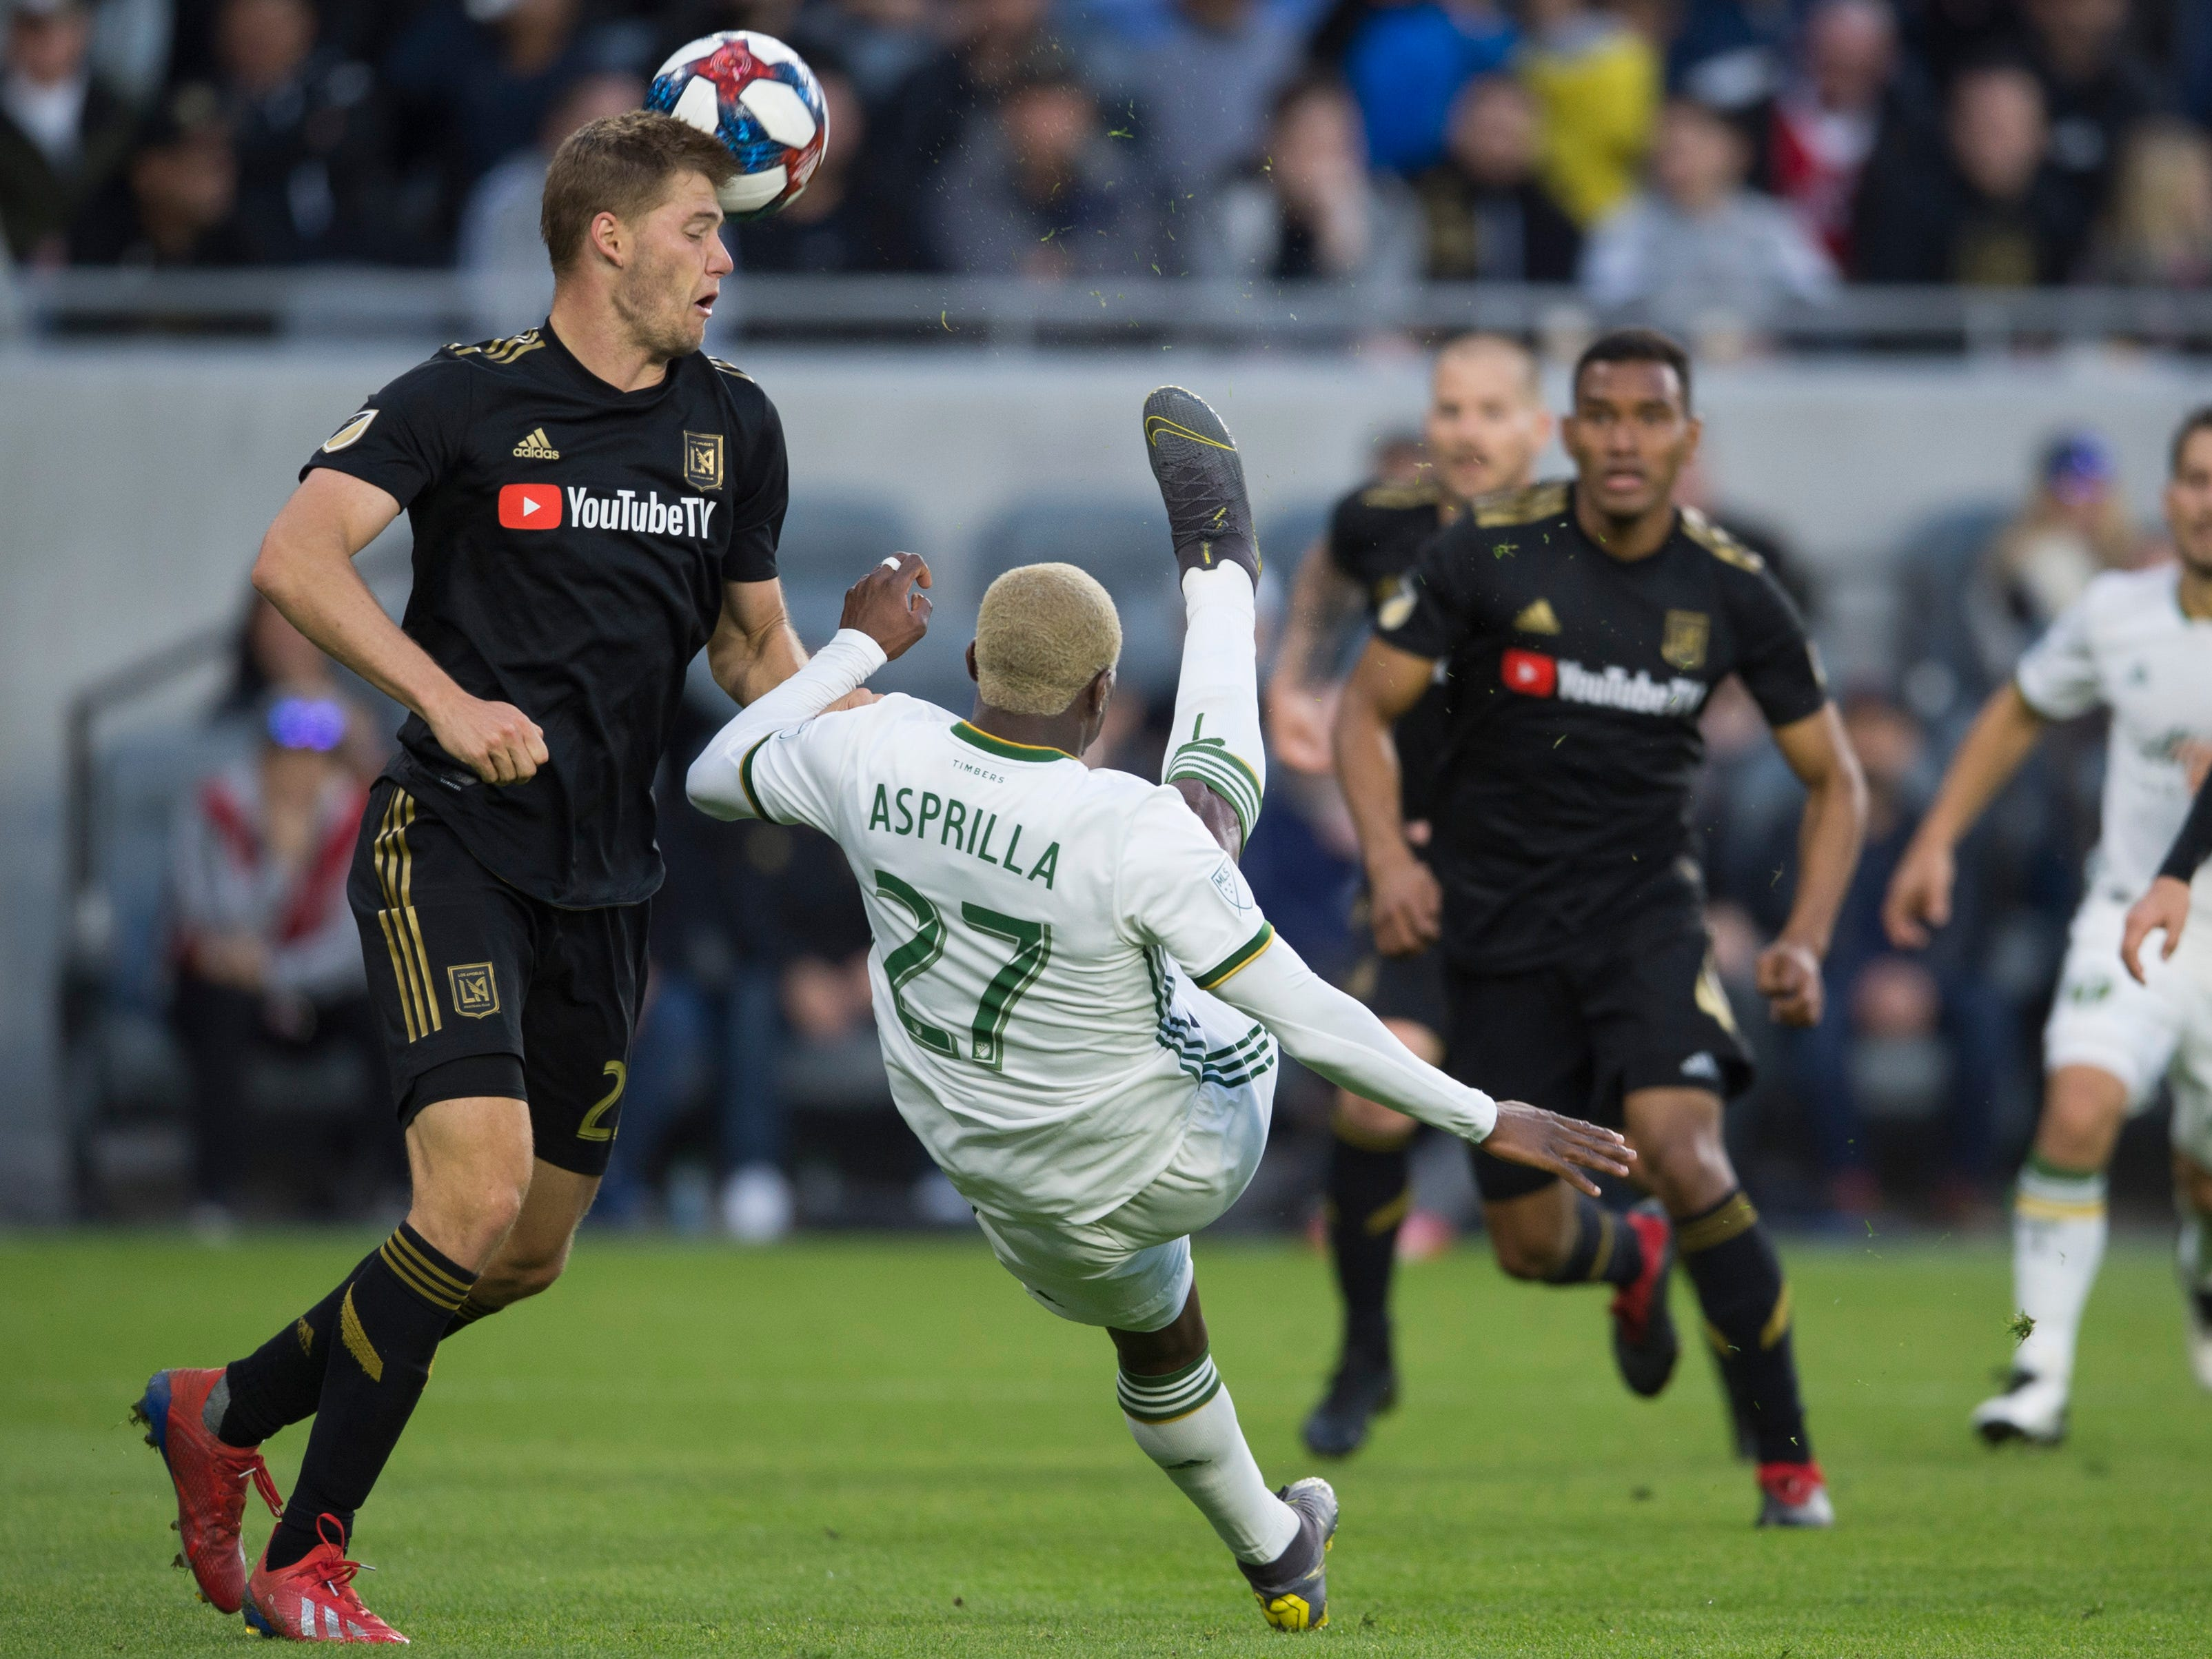 March 10: Portland Timbers midfielder Dairon Asprilla (27) attempts a shot while Los Angeles FC defender Walker Zimmerman (25) defends during the second half at Banc of California Stadium. LAFC won the game, 4-1.